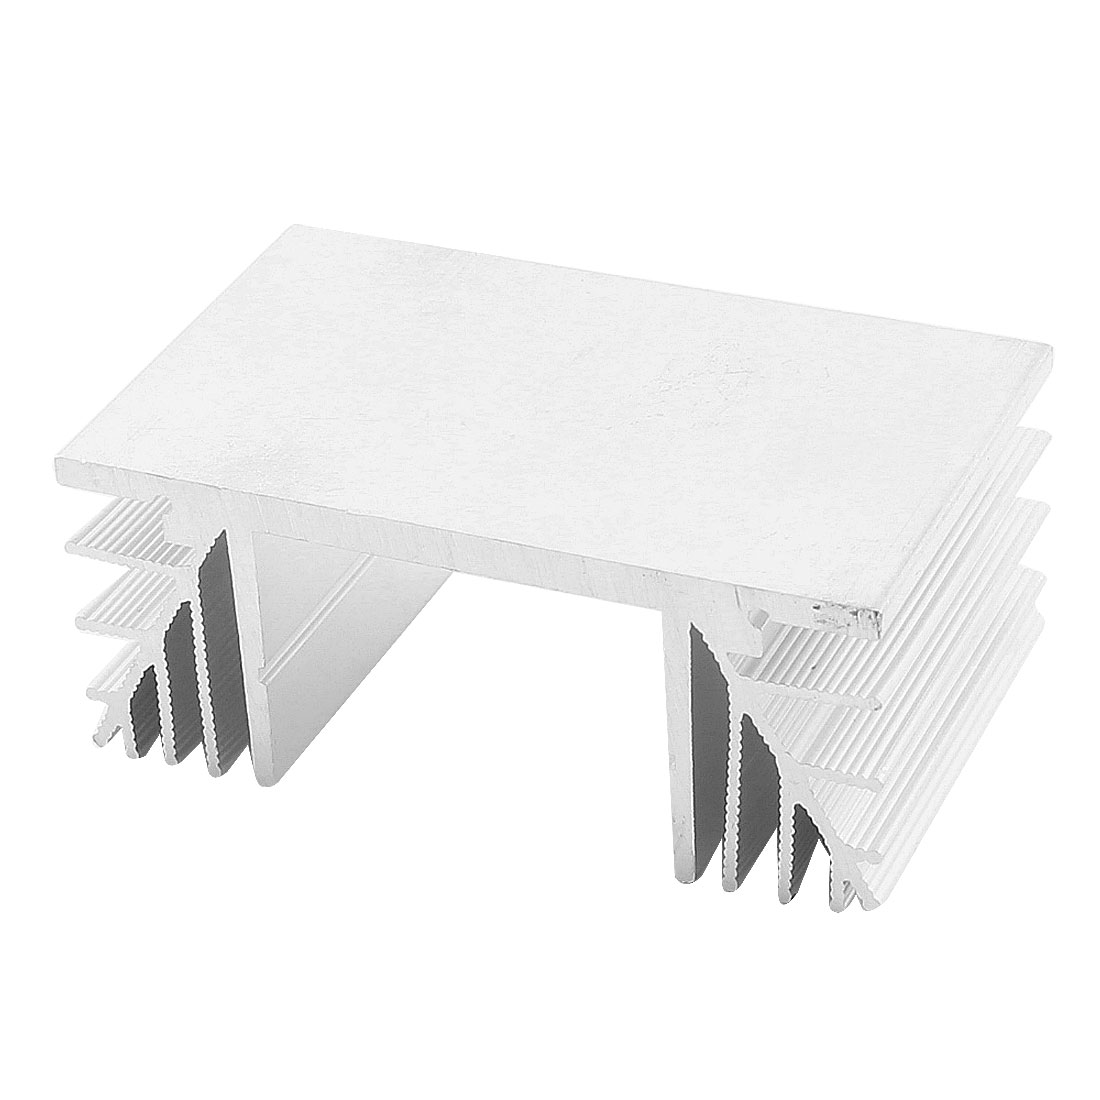 80mm x 50mm x 33mm Silver Tone Aluminium Heatsink Heat Dissipation Cooler Fin